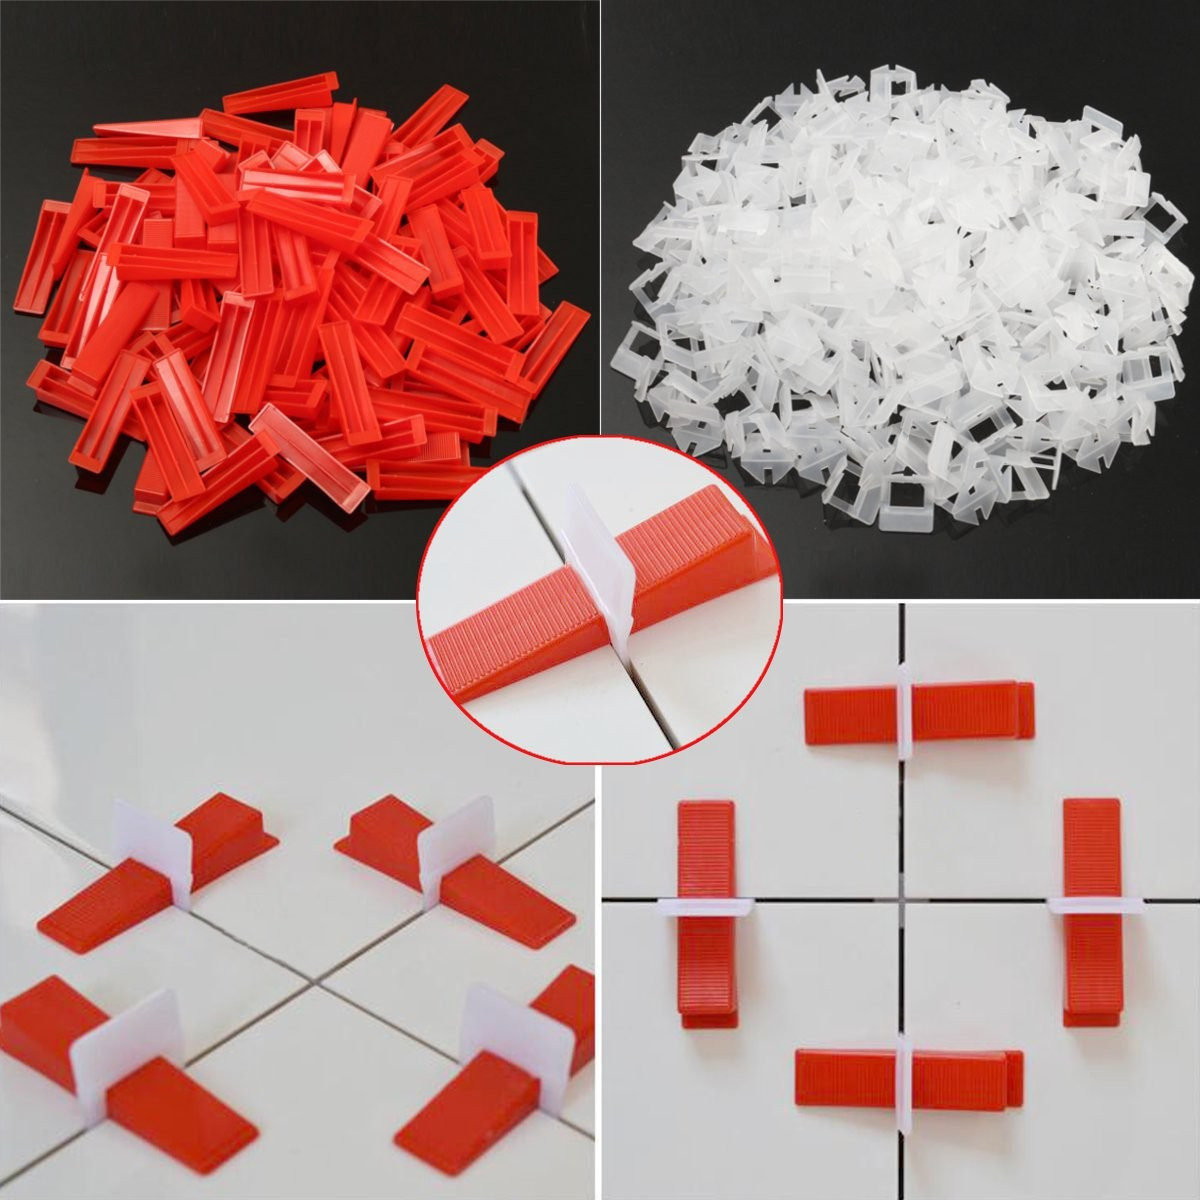 800Pcs Tile Leveling Spacer System Construction Tool Spacer-Flooring Level-Lippage Plastic Spacers